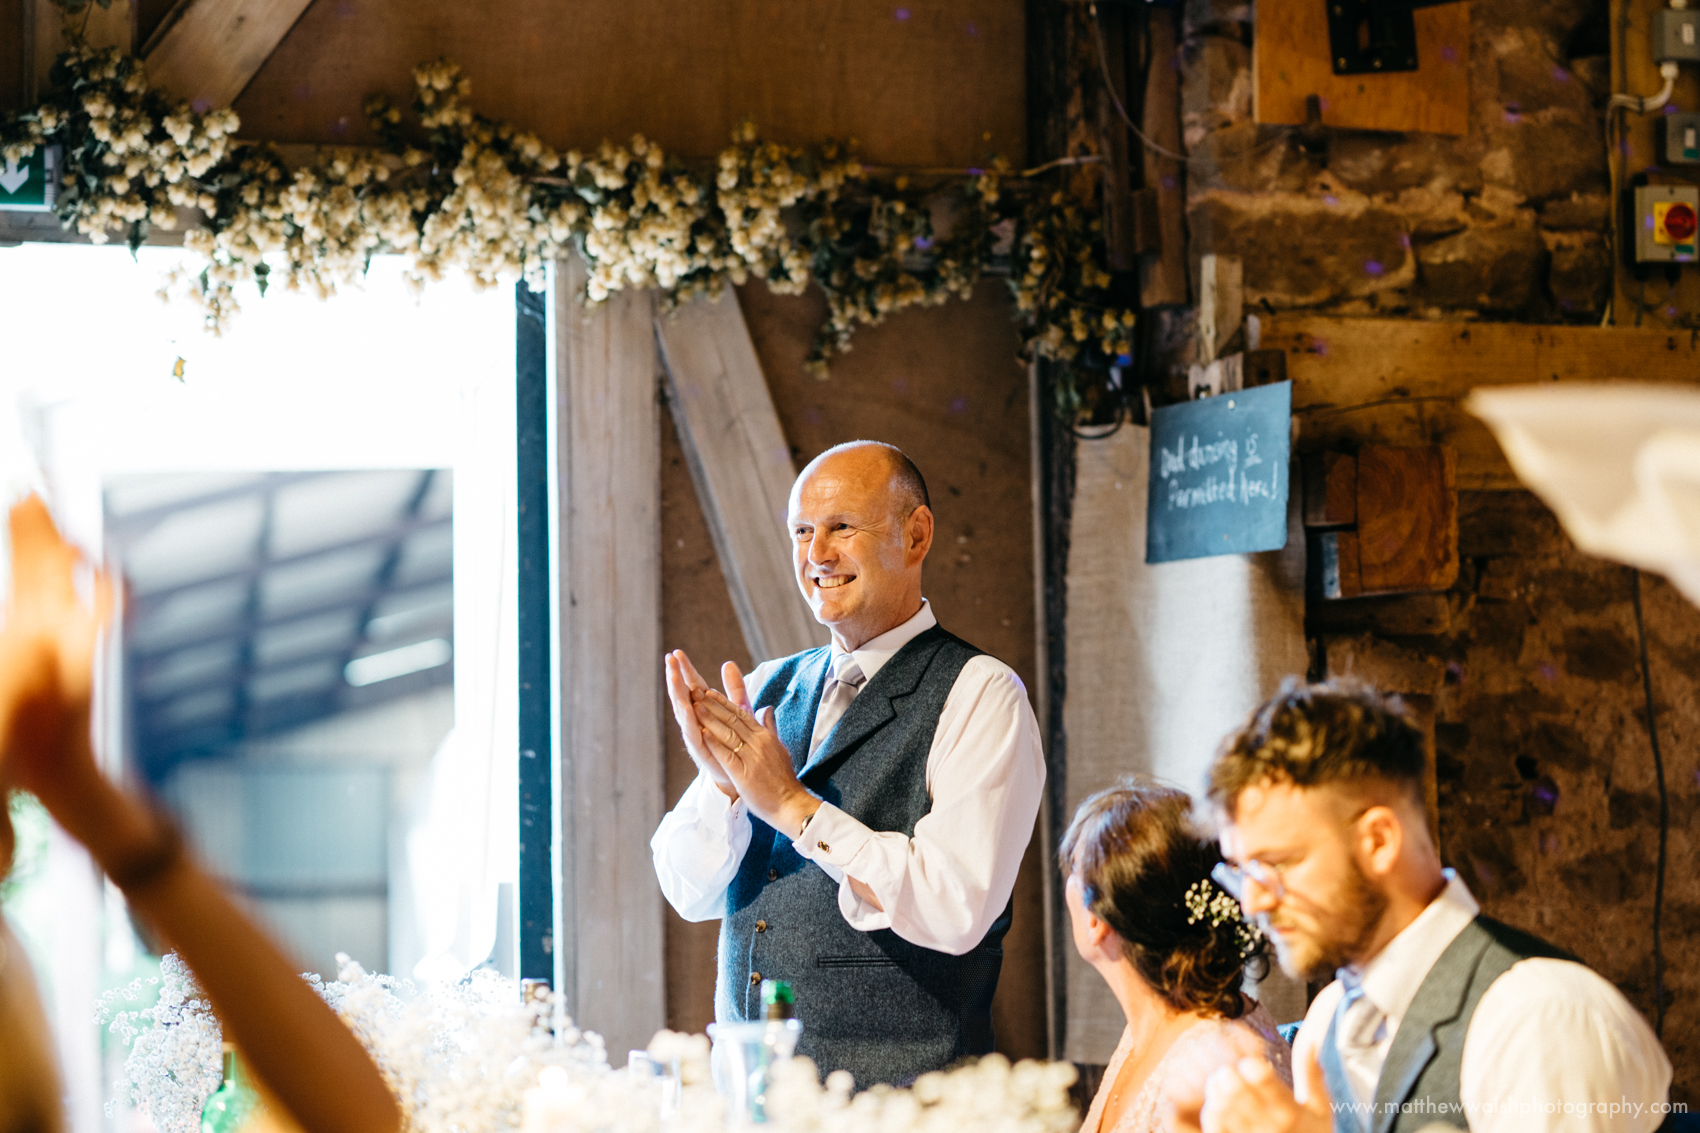 Father of the bride claps the speeches